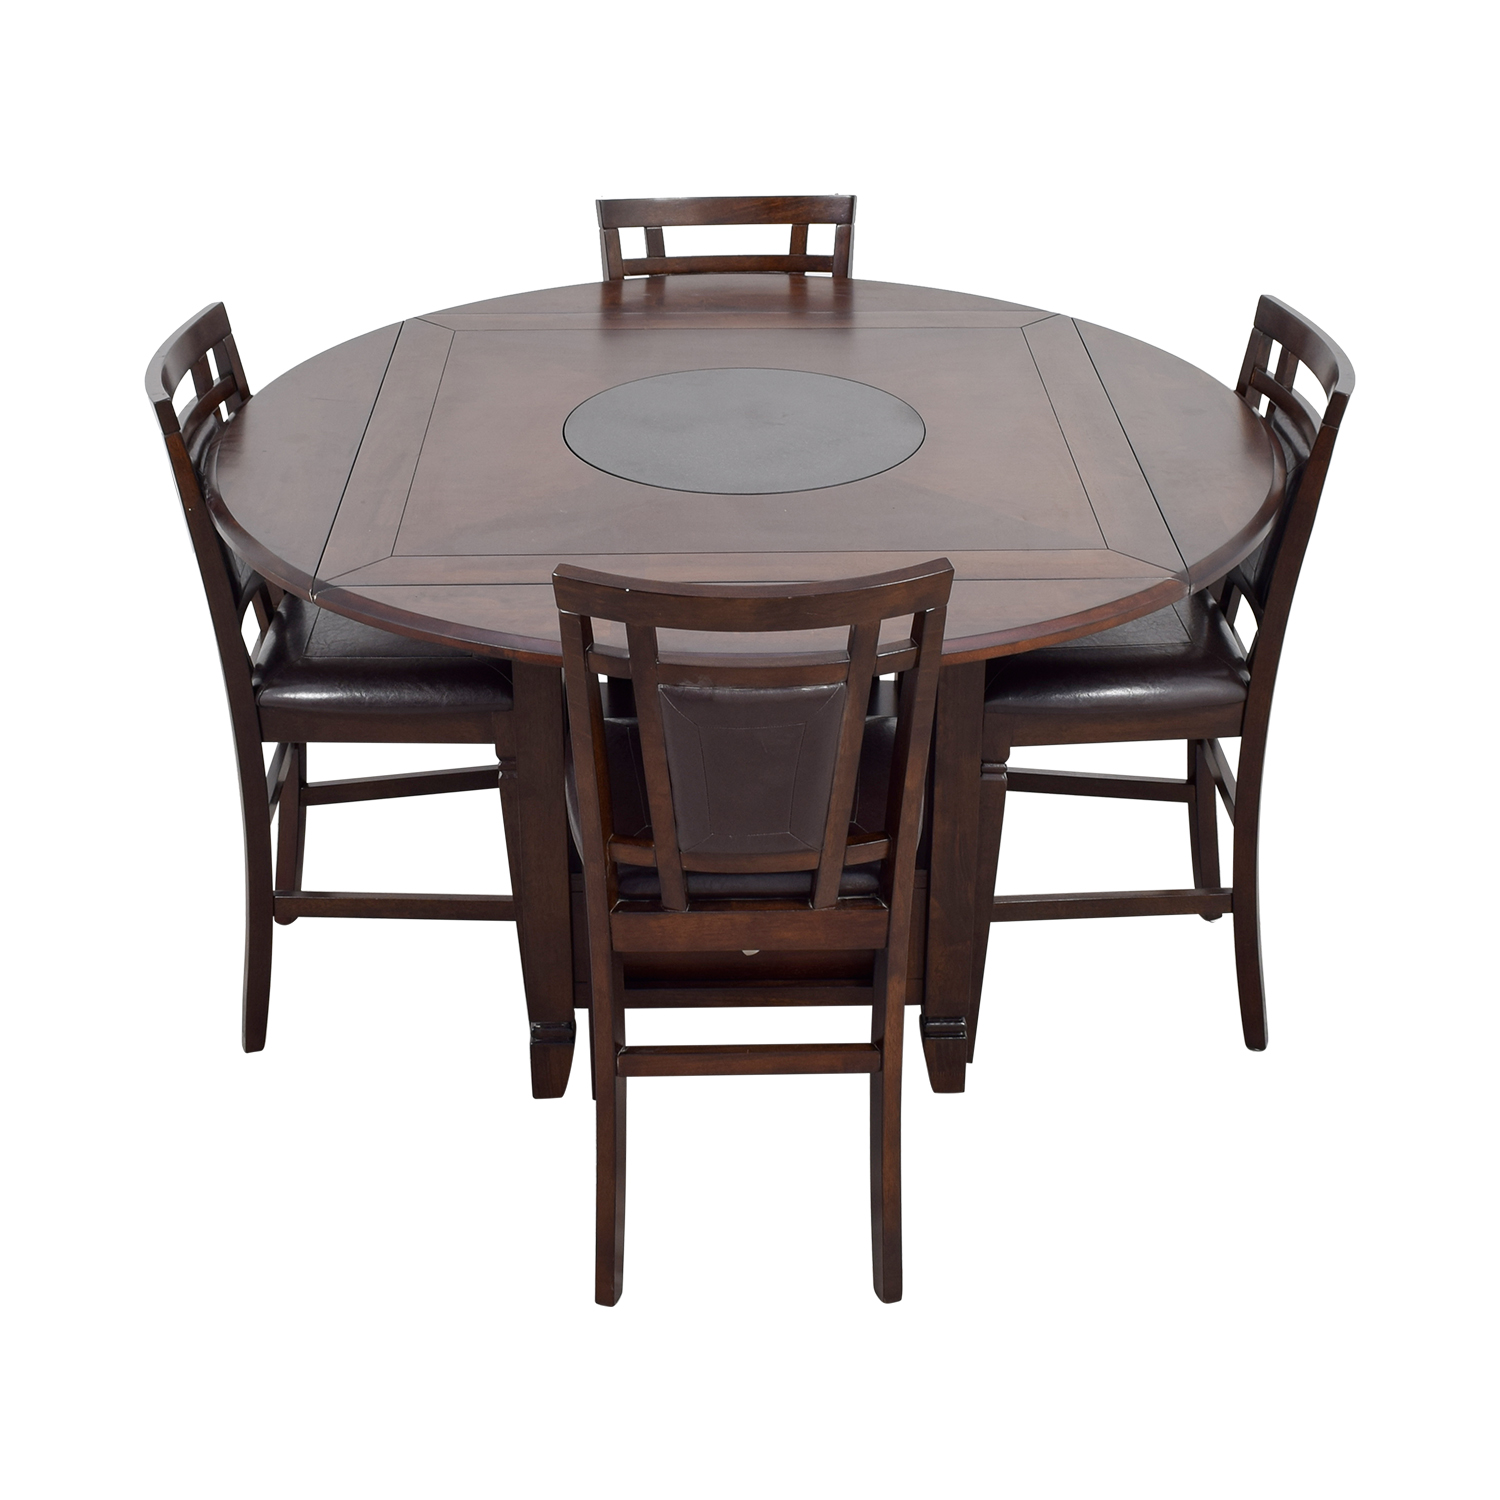 Northfield Northfield Wood Counter Height Dining Set coupon